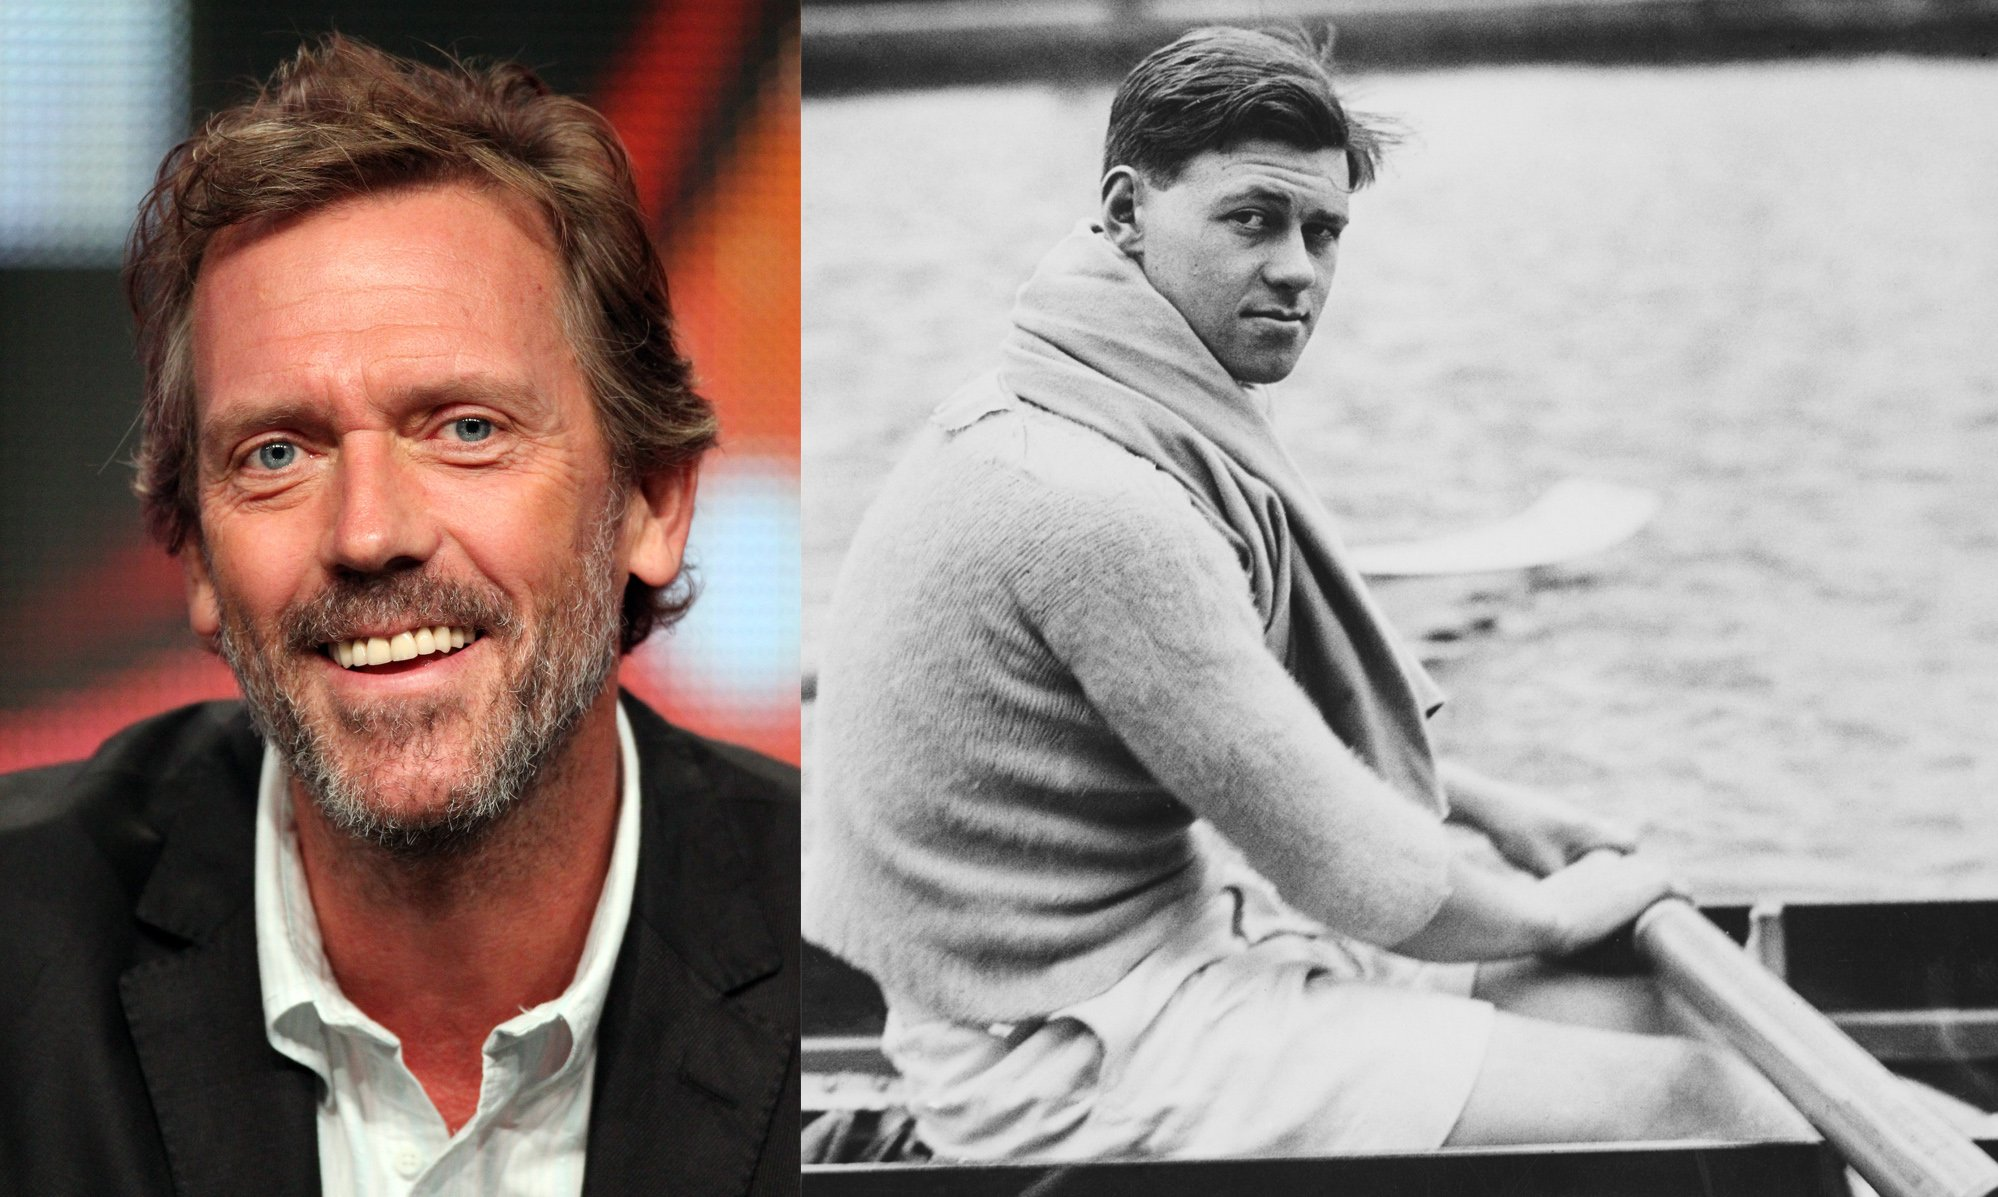 """Olympics on Twitter: """"Ran Laurie – @hughlaurie 's father - competed in  rowing. Berlin1936 (4th) ¦ London1948 (1st) #twitterpollresult  https://t.co/6VQdyr7THm… https://t.co/HpgA2nAwTy"""""""